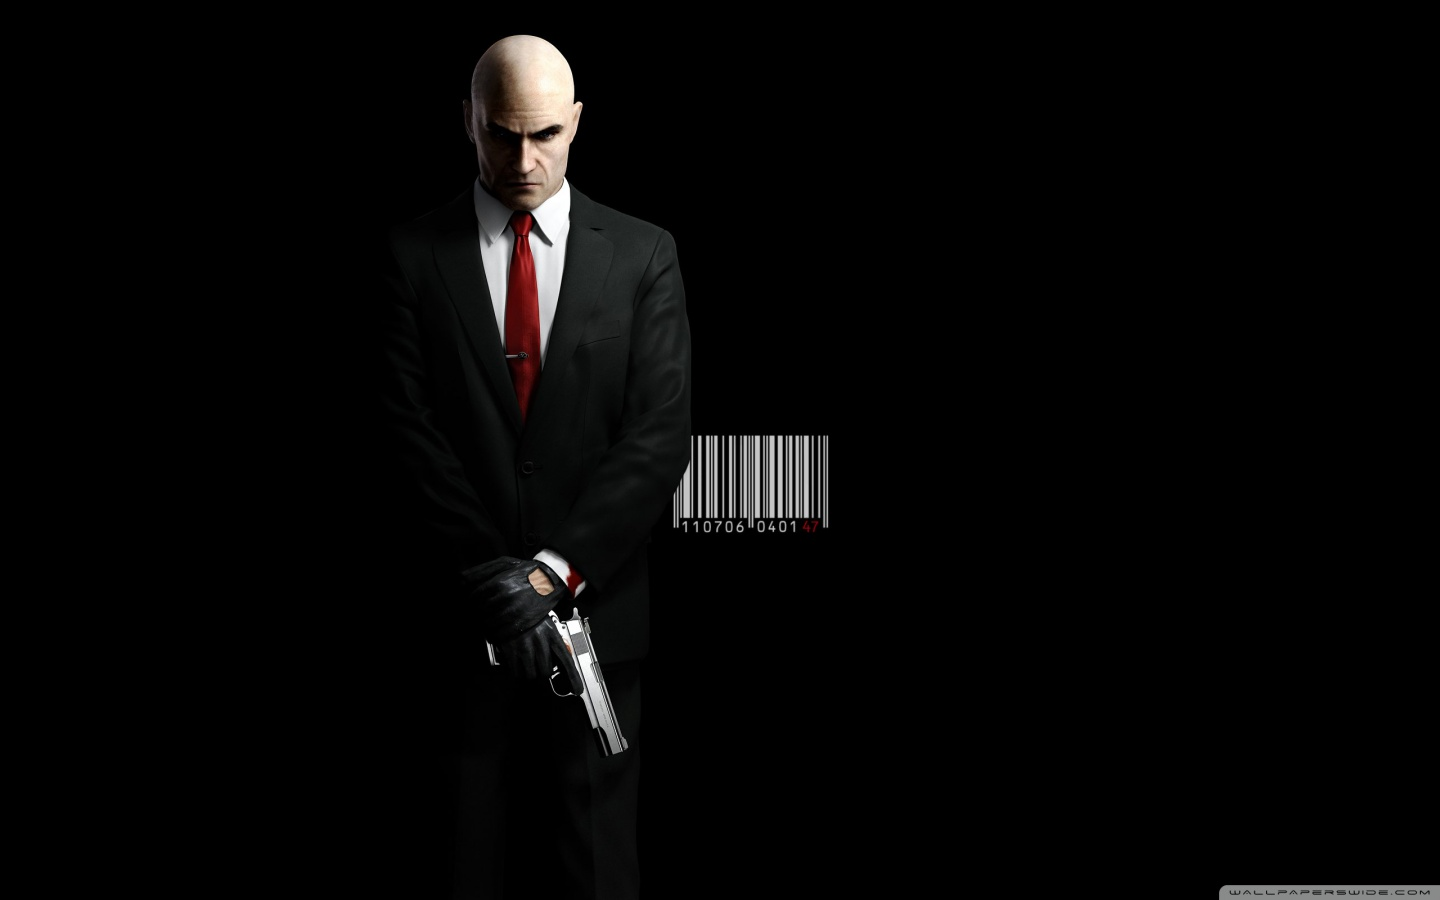 Hitman HD desktop wallpaper : High Definition : Fullscreen : Mobile